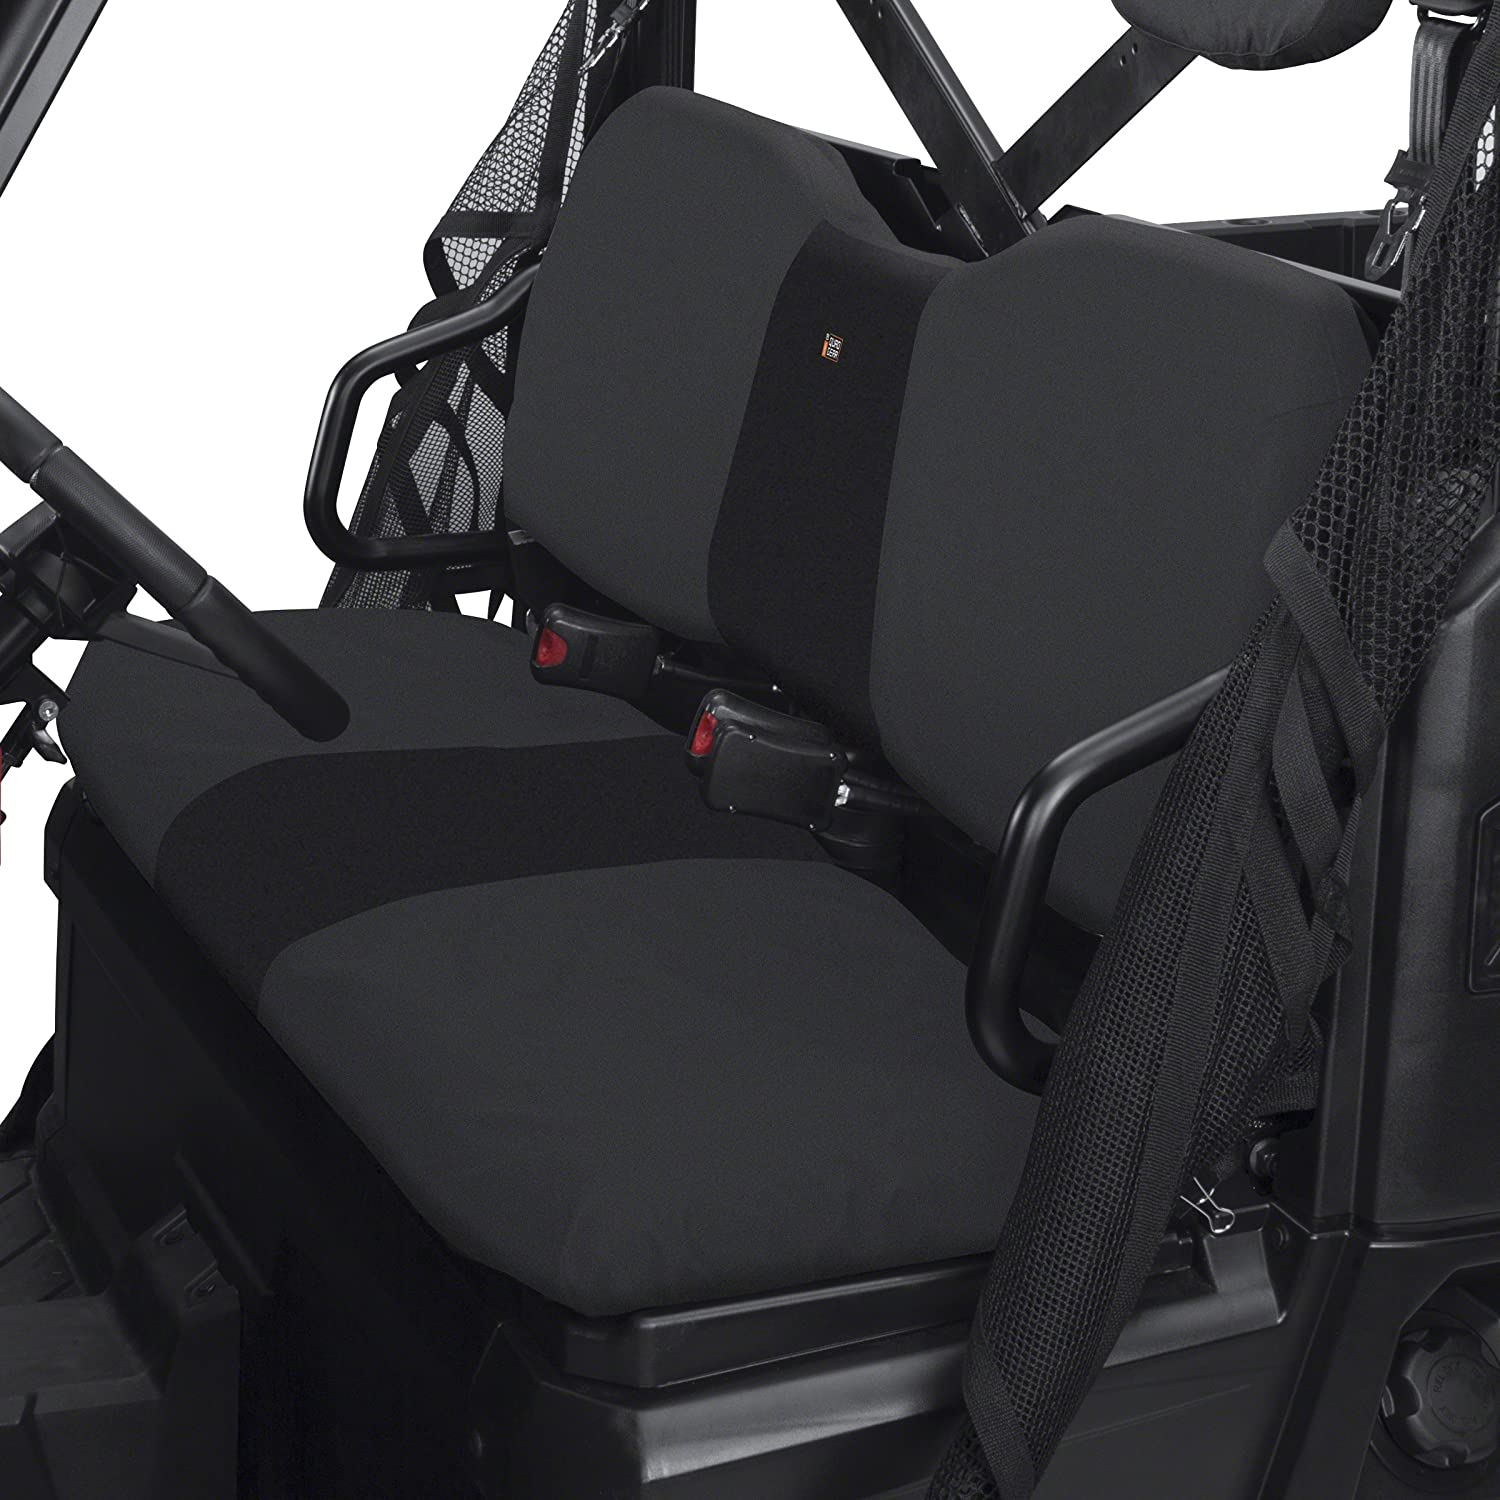 Classic Accessories 18-026-010401-00 QuadGear UTV Seat Cover for Polaris Ranger XP/HD (Bench), Black